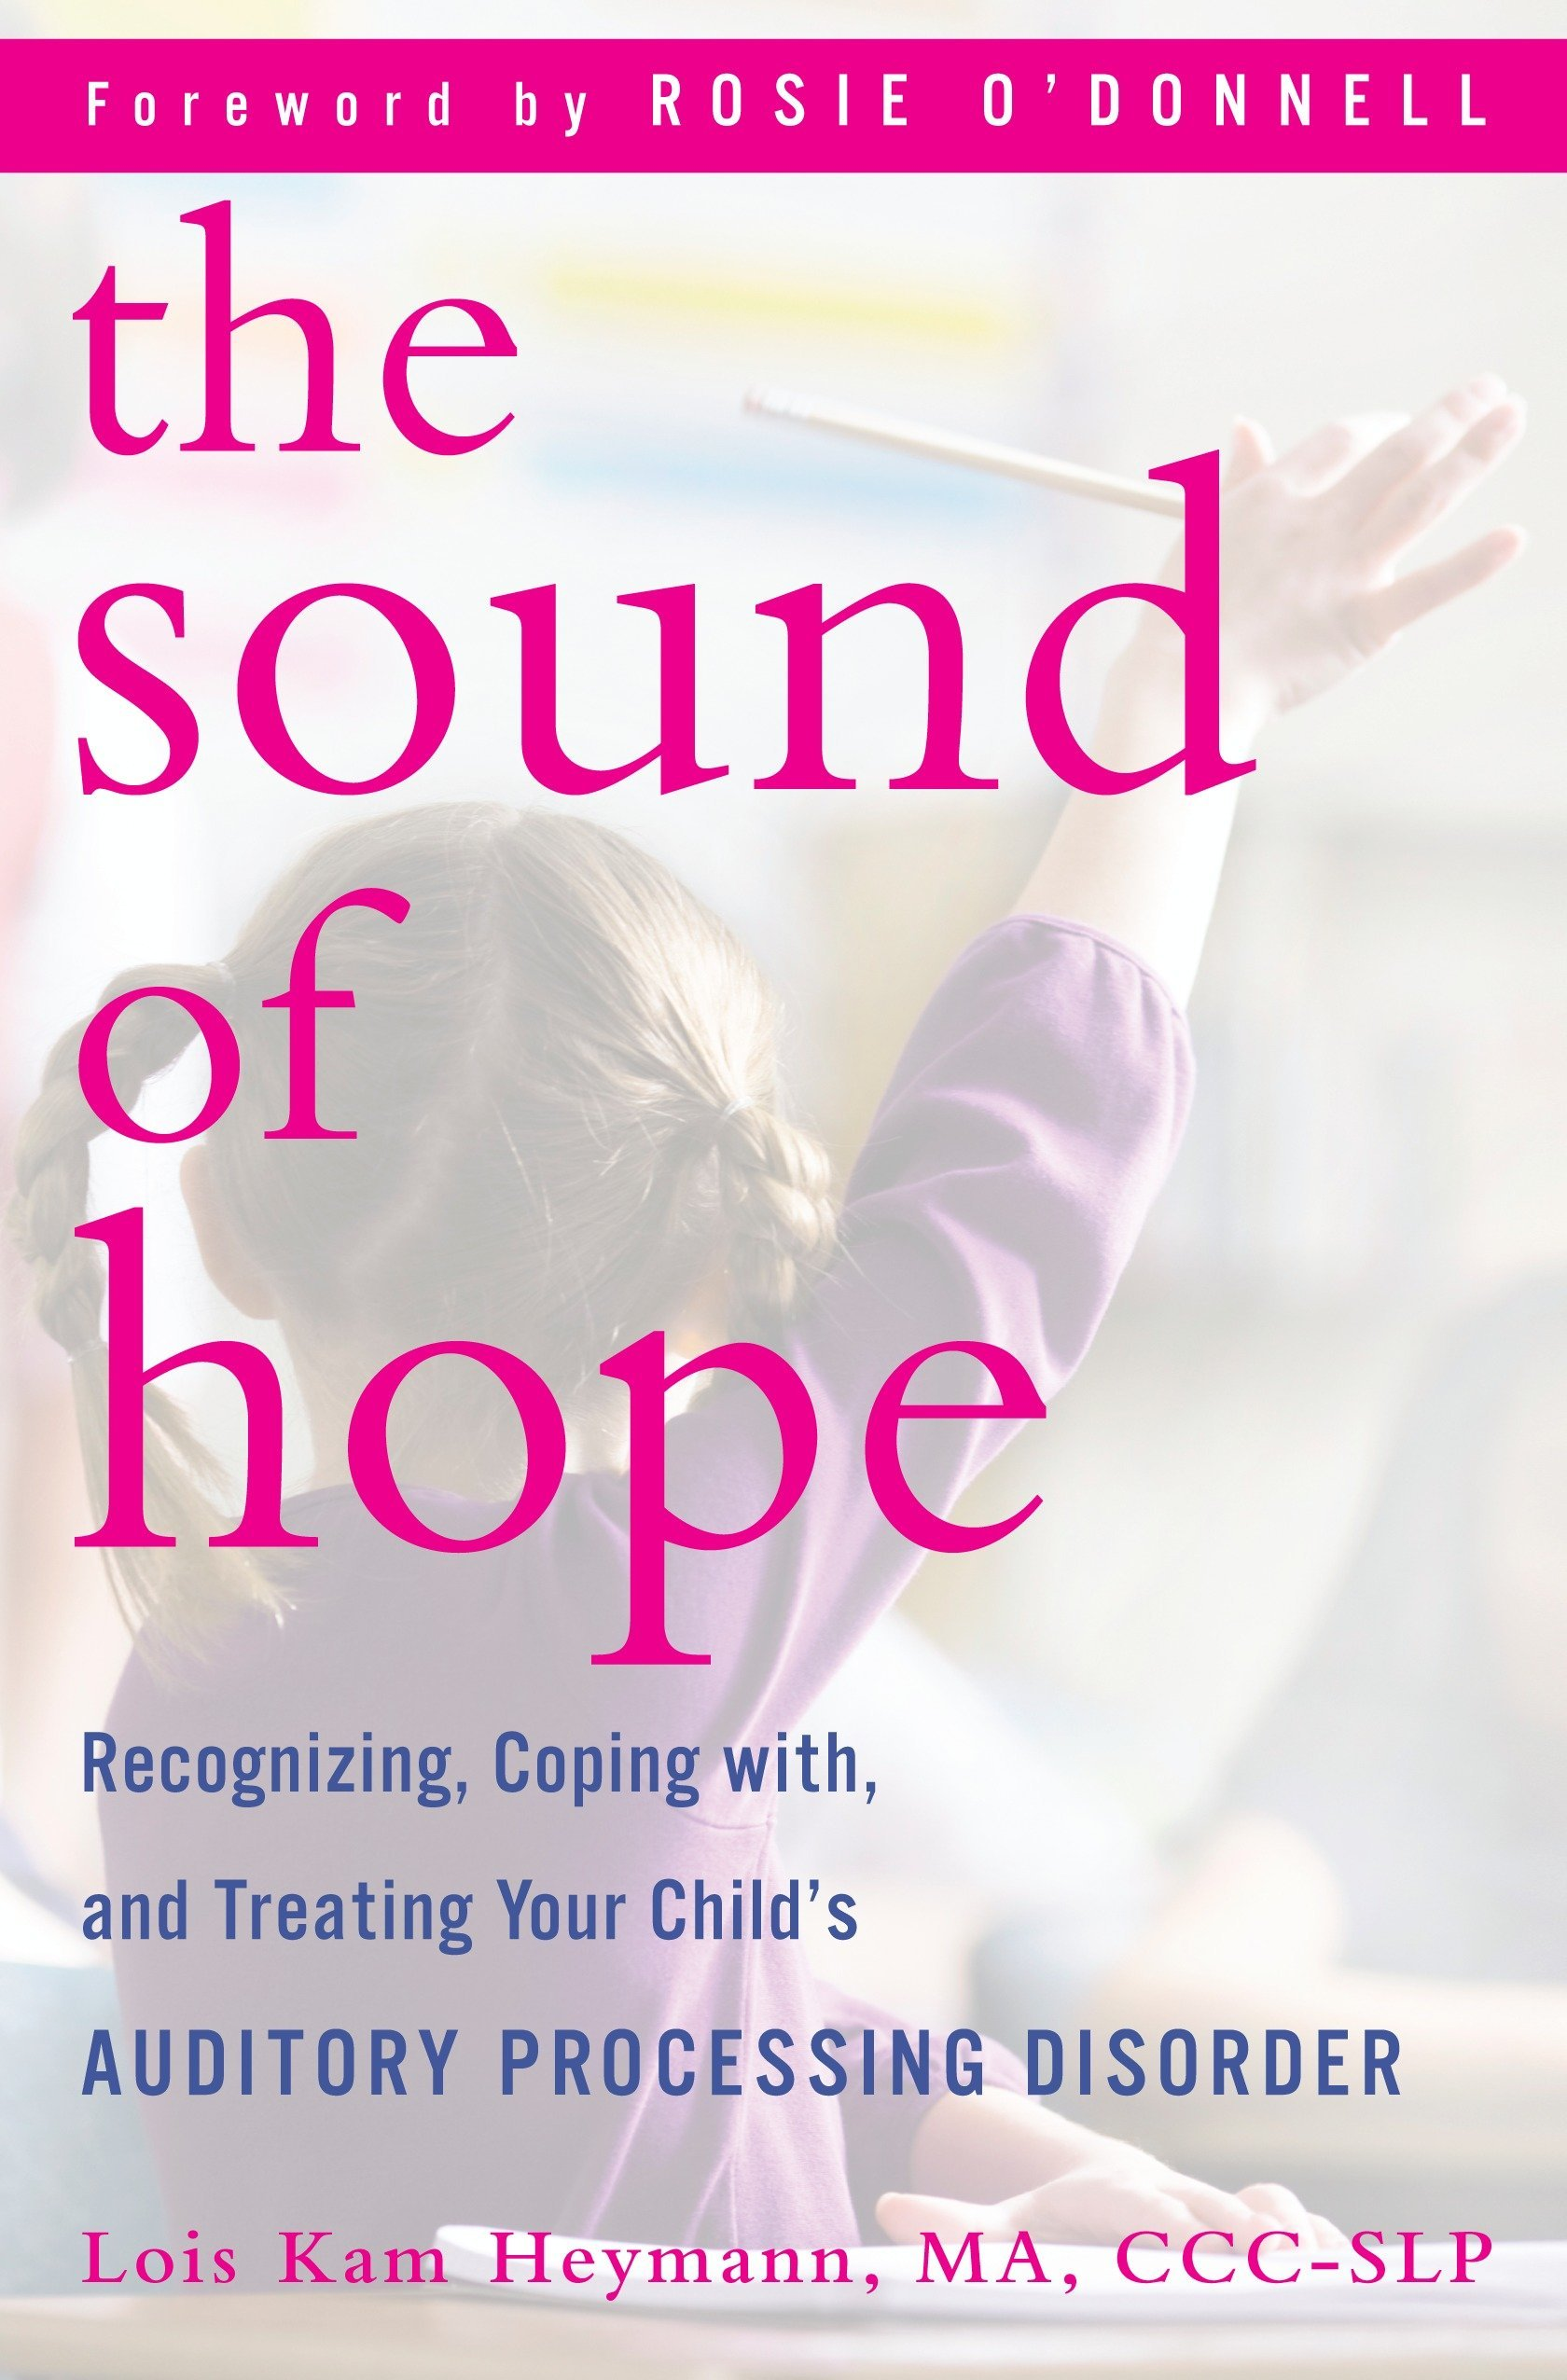 The Sound of Hope: Recognizing, Coping with, and Treating Your Child's Auditory Processing Disorder Hardcover – April 27, 2010 Lois Kam Heymann Rosie O' Donnell Ballantine Books 0345512189